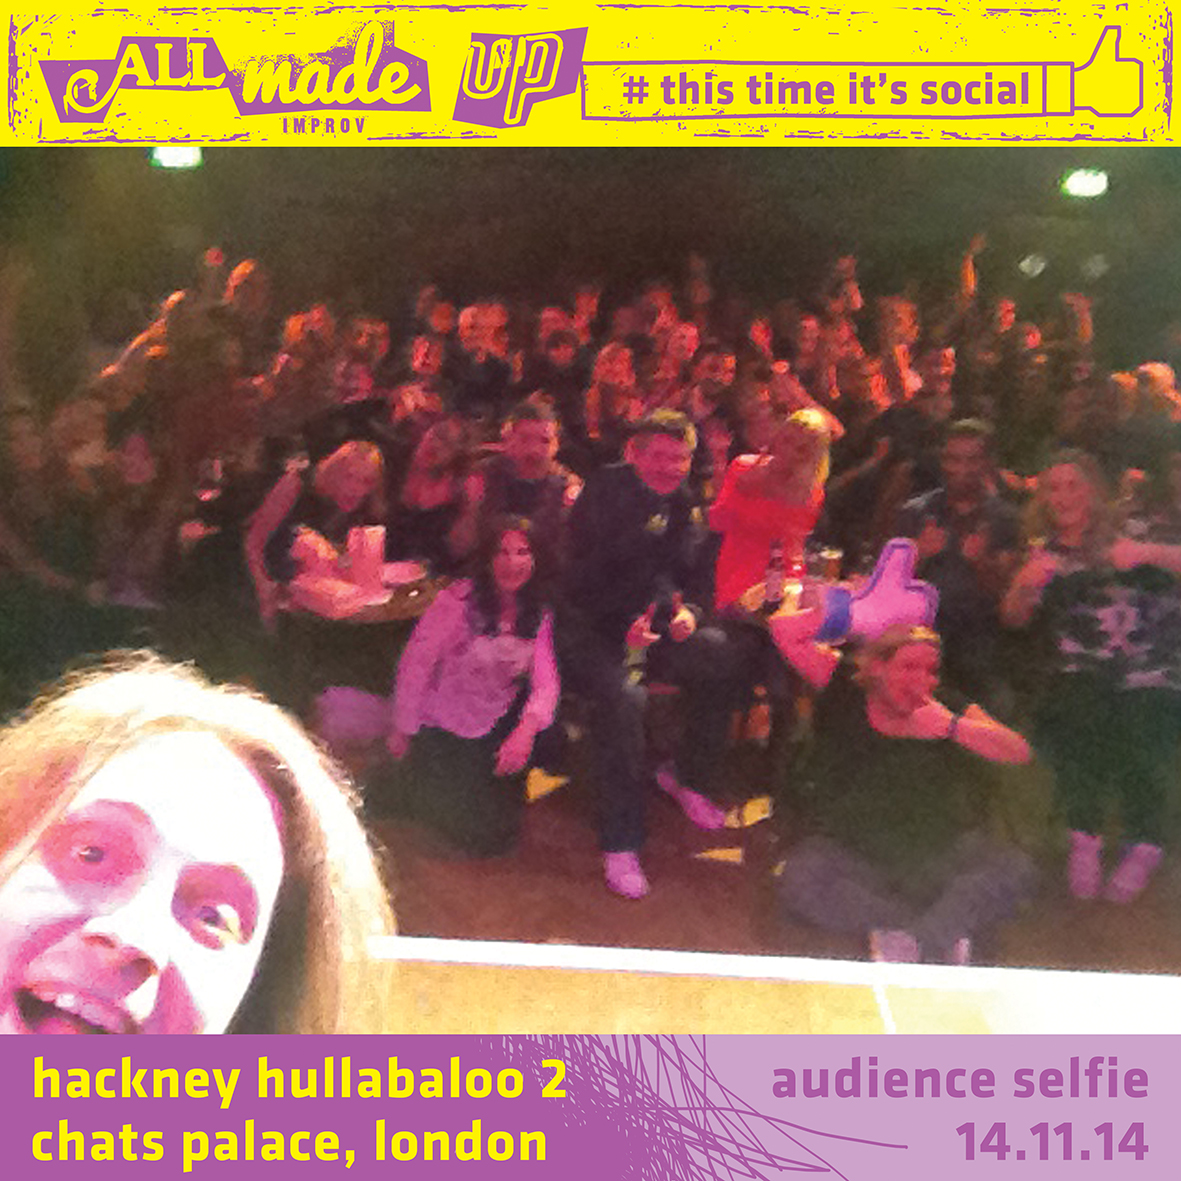 HACKNEY HULLABALOO 3 -  AUDIENCE SELFIE - RGB - 14.11.14.jpg